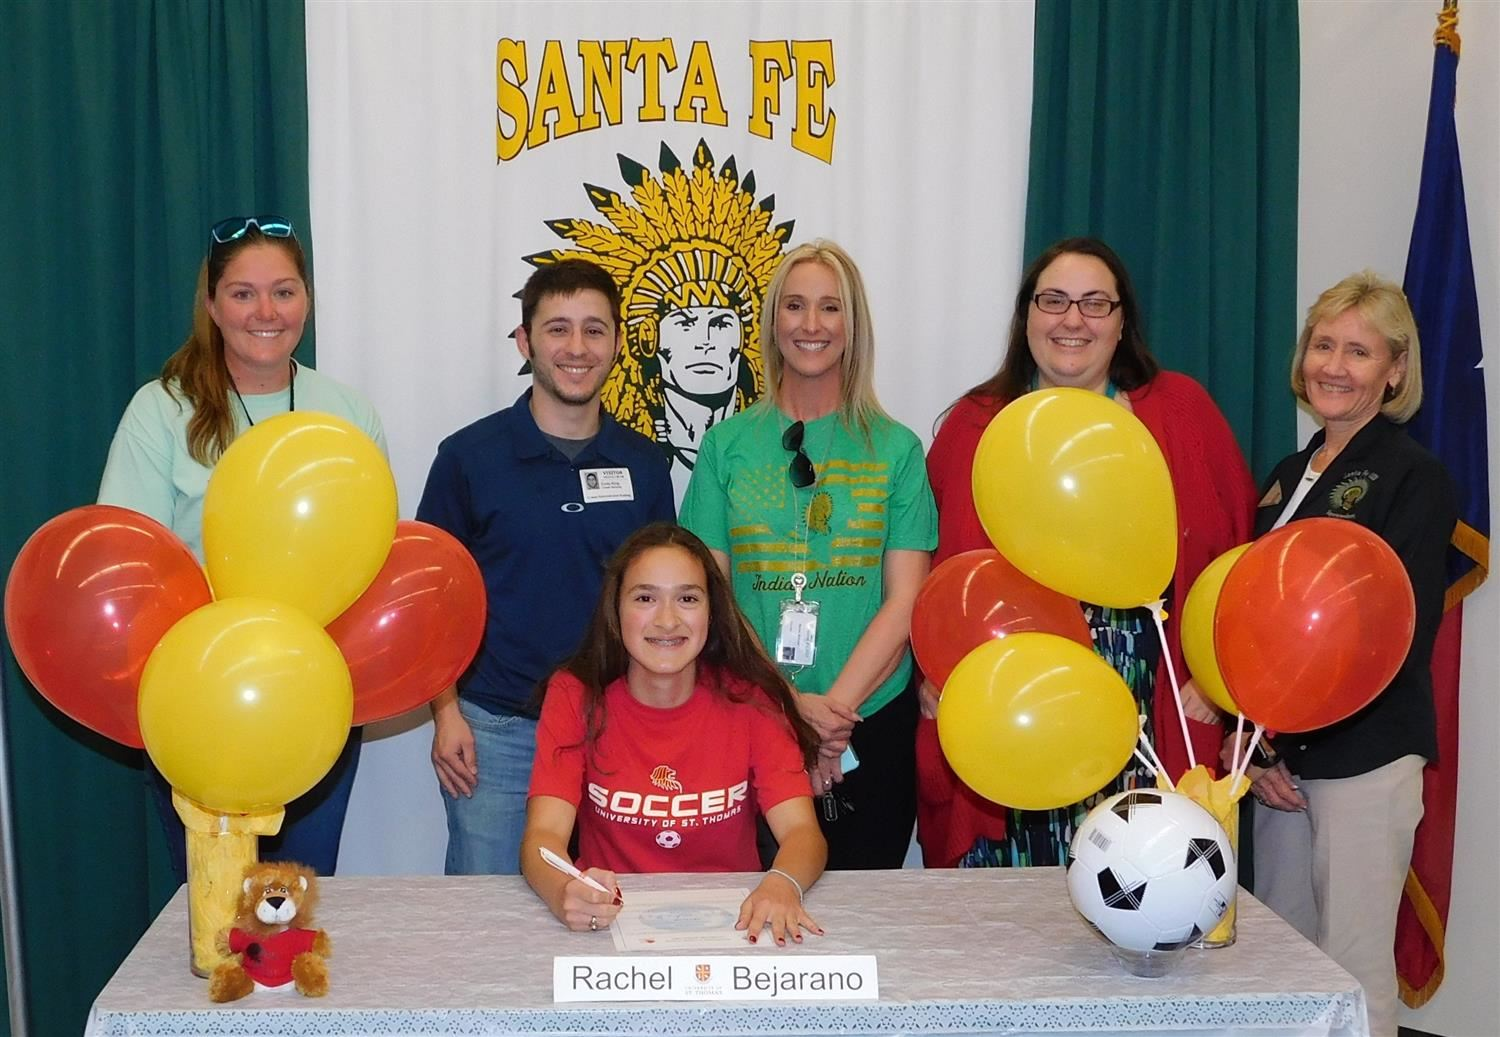 Rachel Bejarano Signing with staff pictured